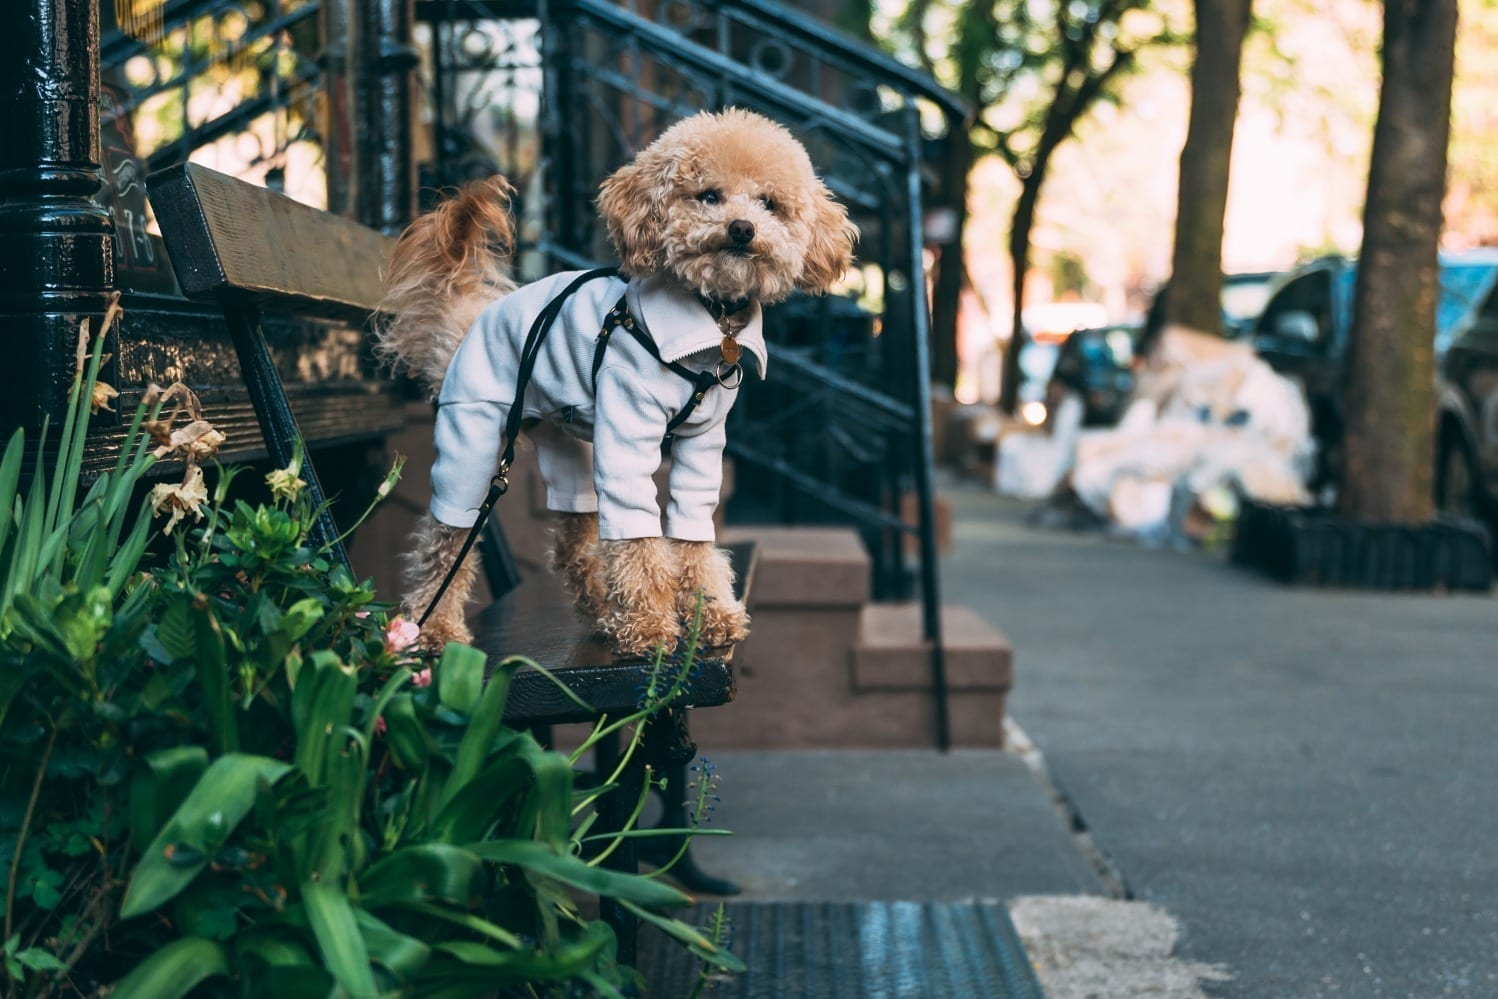 Puppy training | Pup sitting on bench | Dog Relations NYC